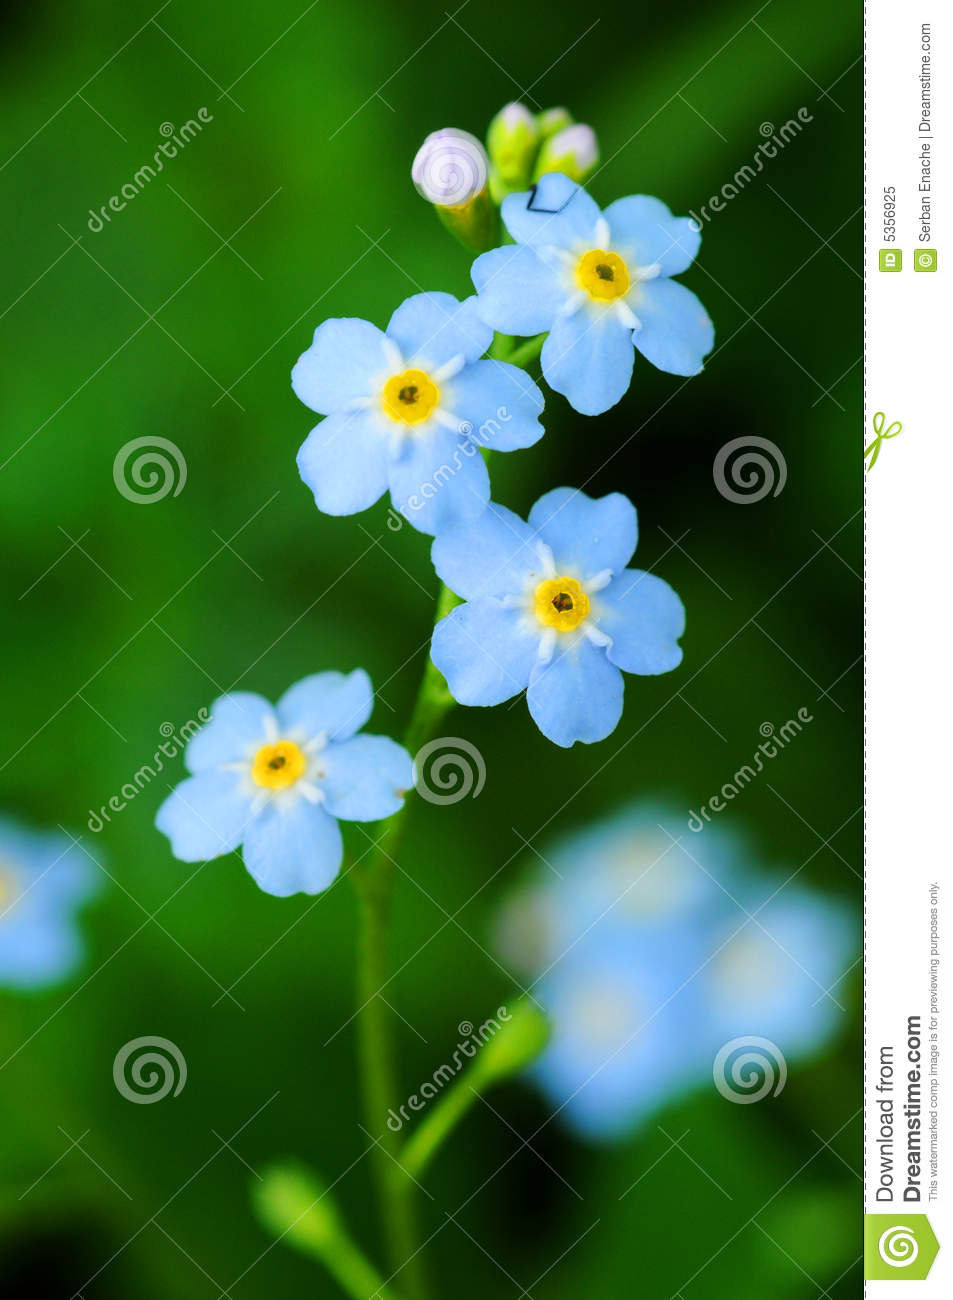 Download Flowers stock image. Image of alpestris, tiny, details - 5356925